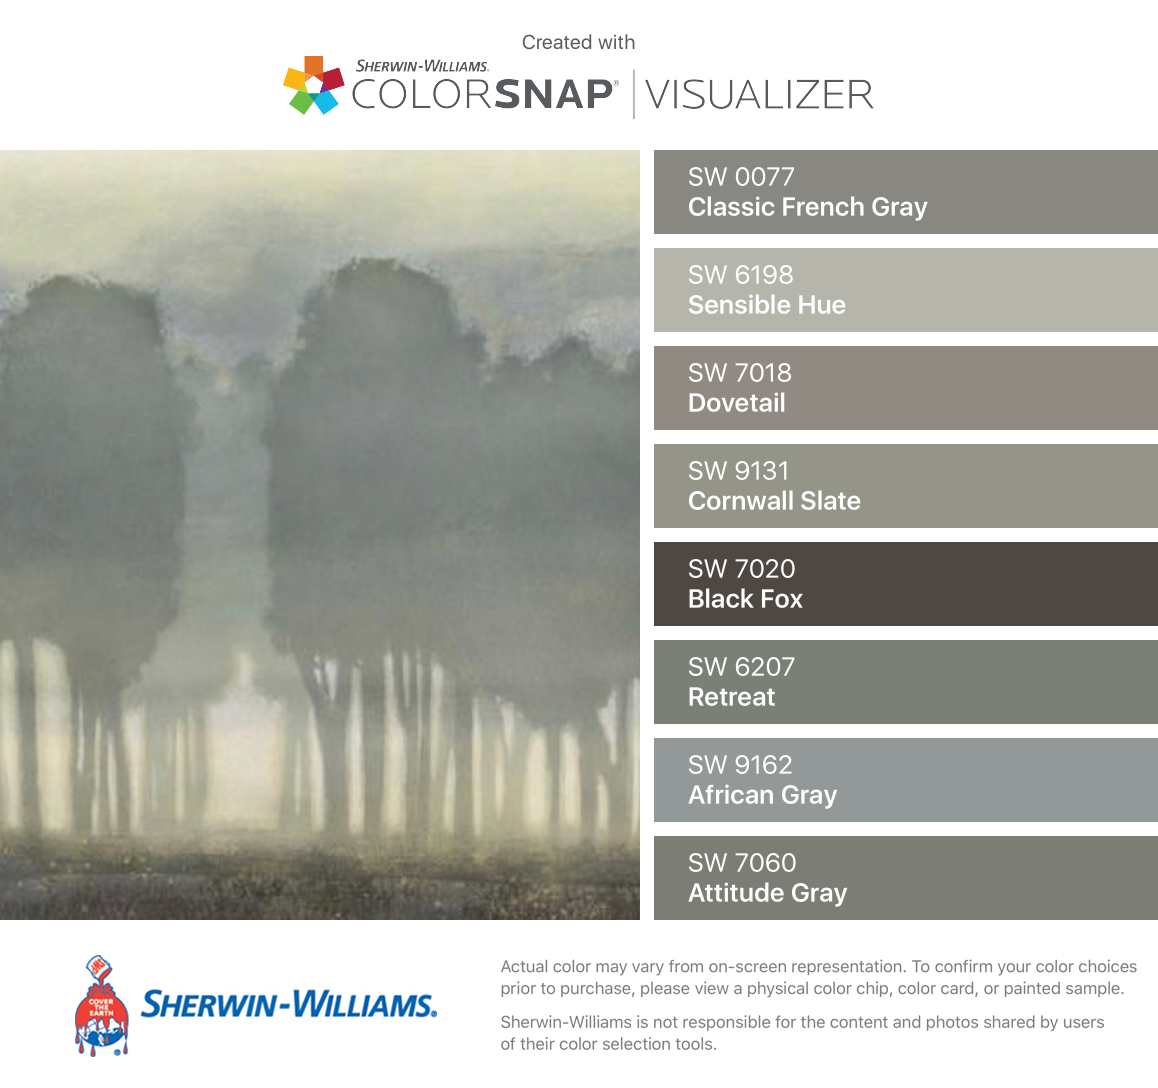 7018 dovetail sherwin williams - I Found These Colors With Colorsnap Visualizer For Iphone By Sherwin Williams Classic French Gray Sw Sensible Hue Sw Dovetail Sw Cornwall Slate Sw